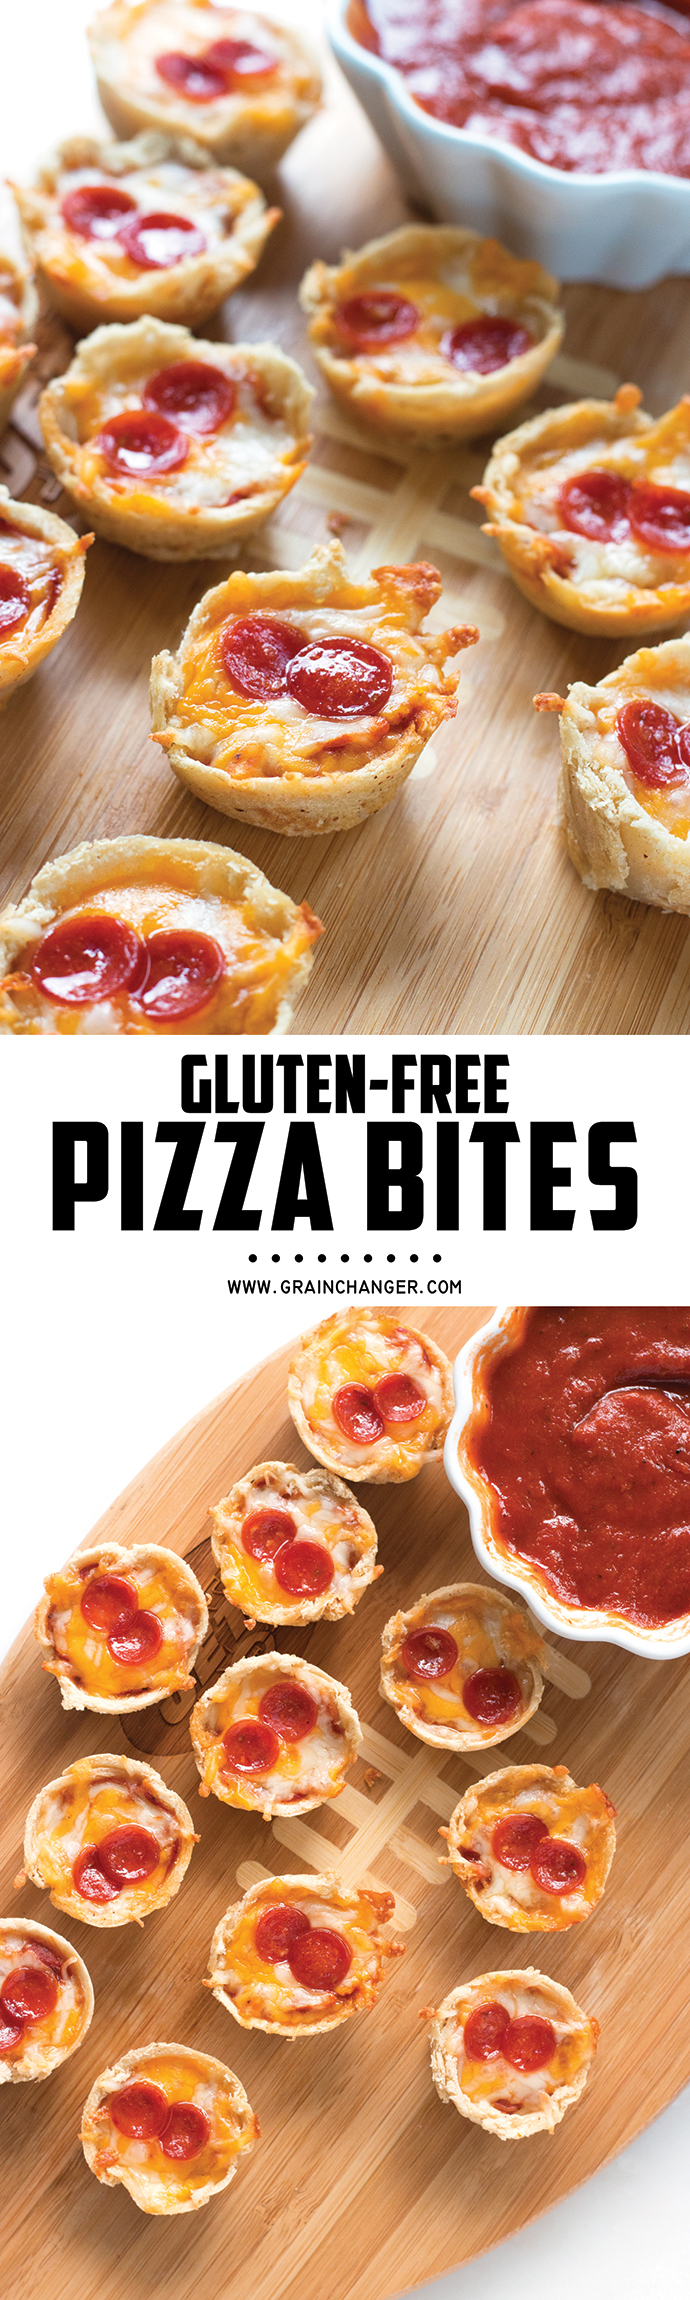 Gluten-Free Pizza Bites - perfect appetizer for the Super Bowl! | www.grainchanger.com